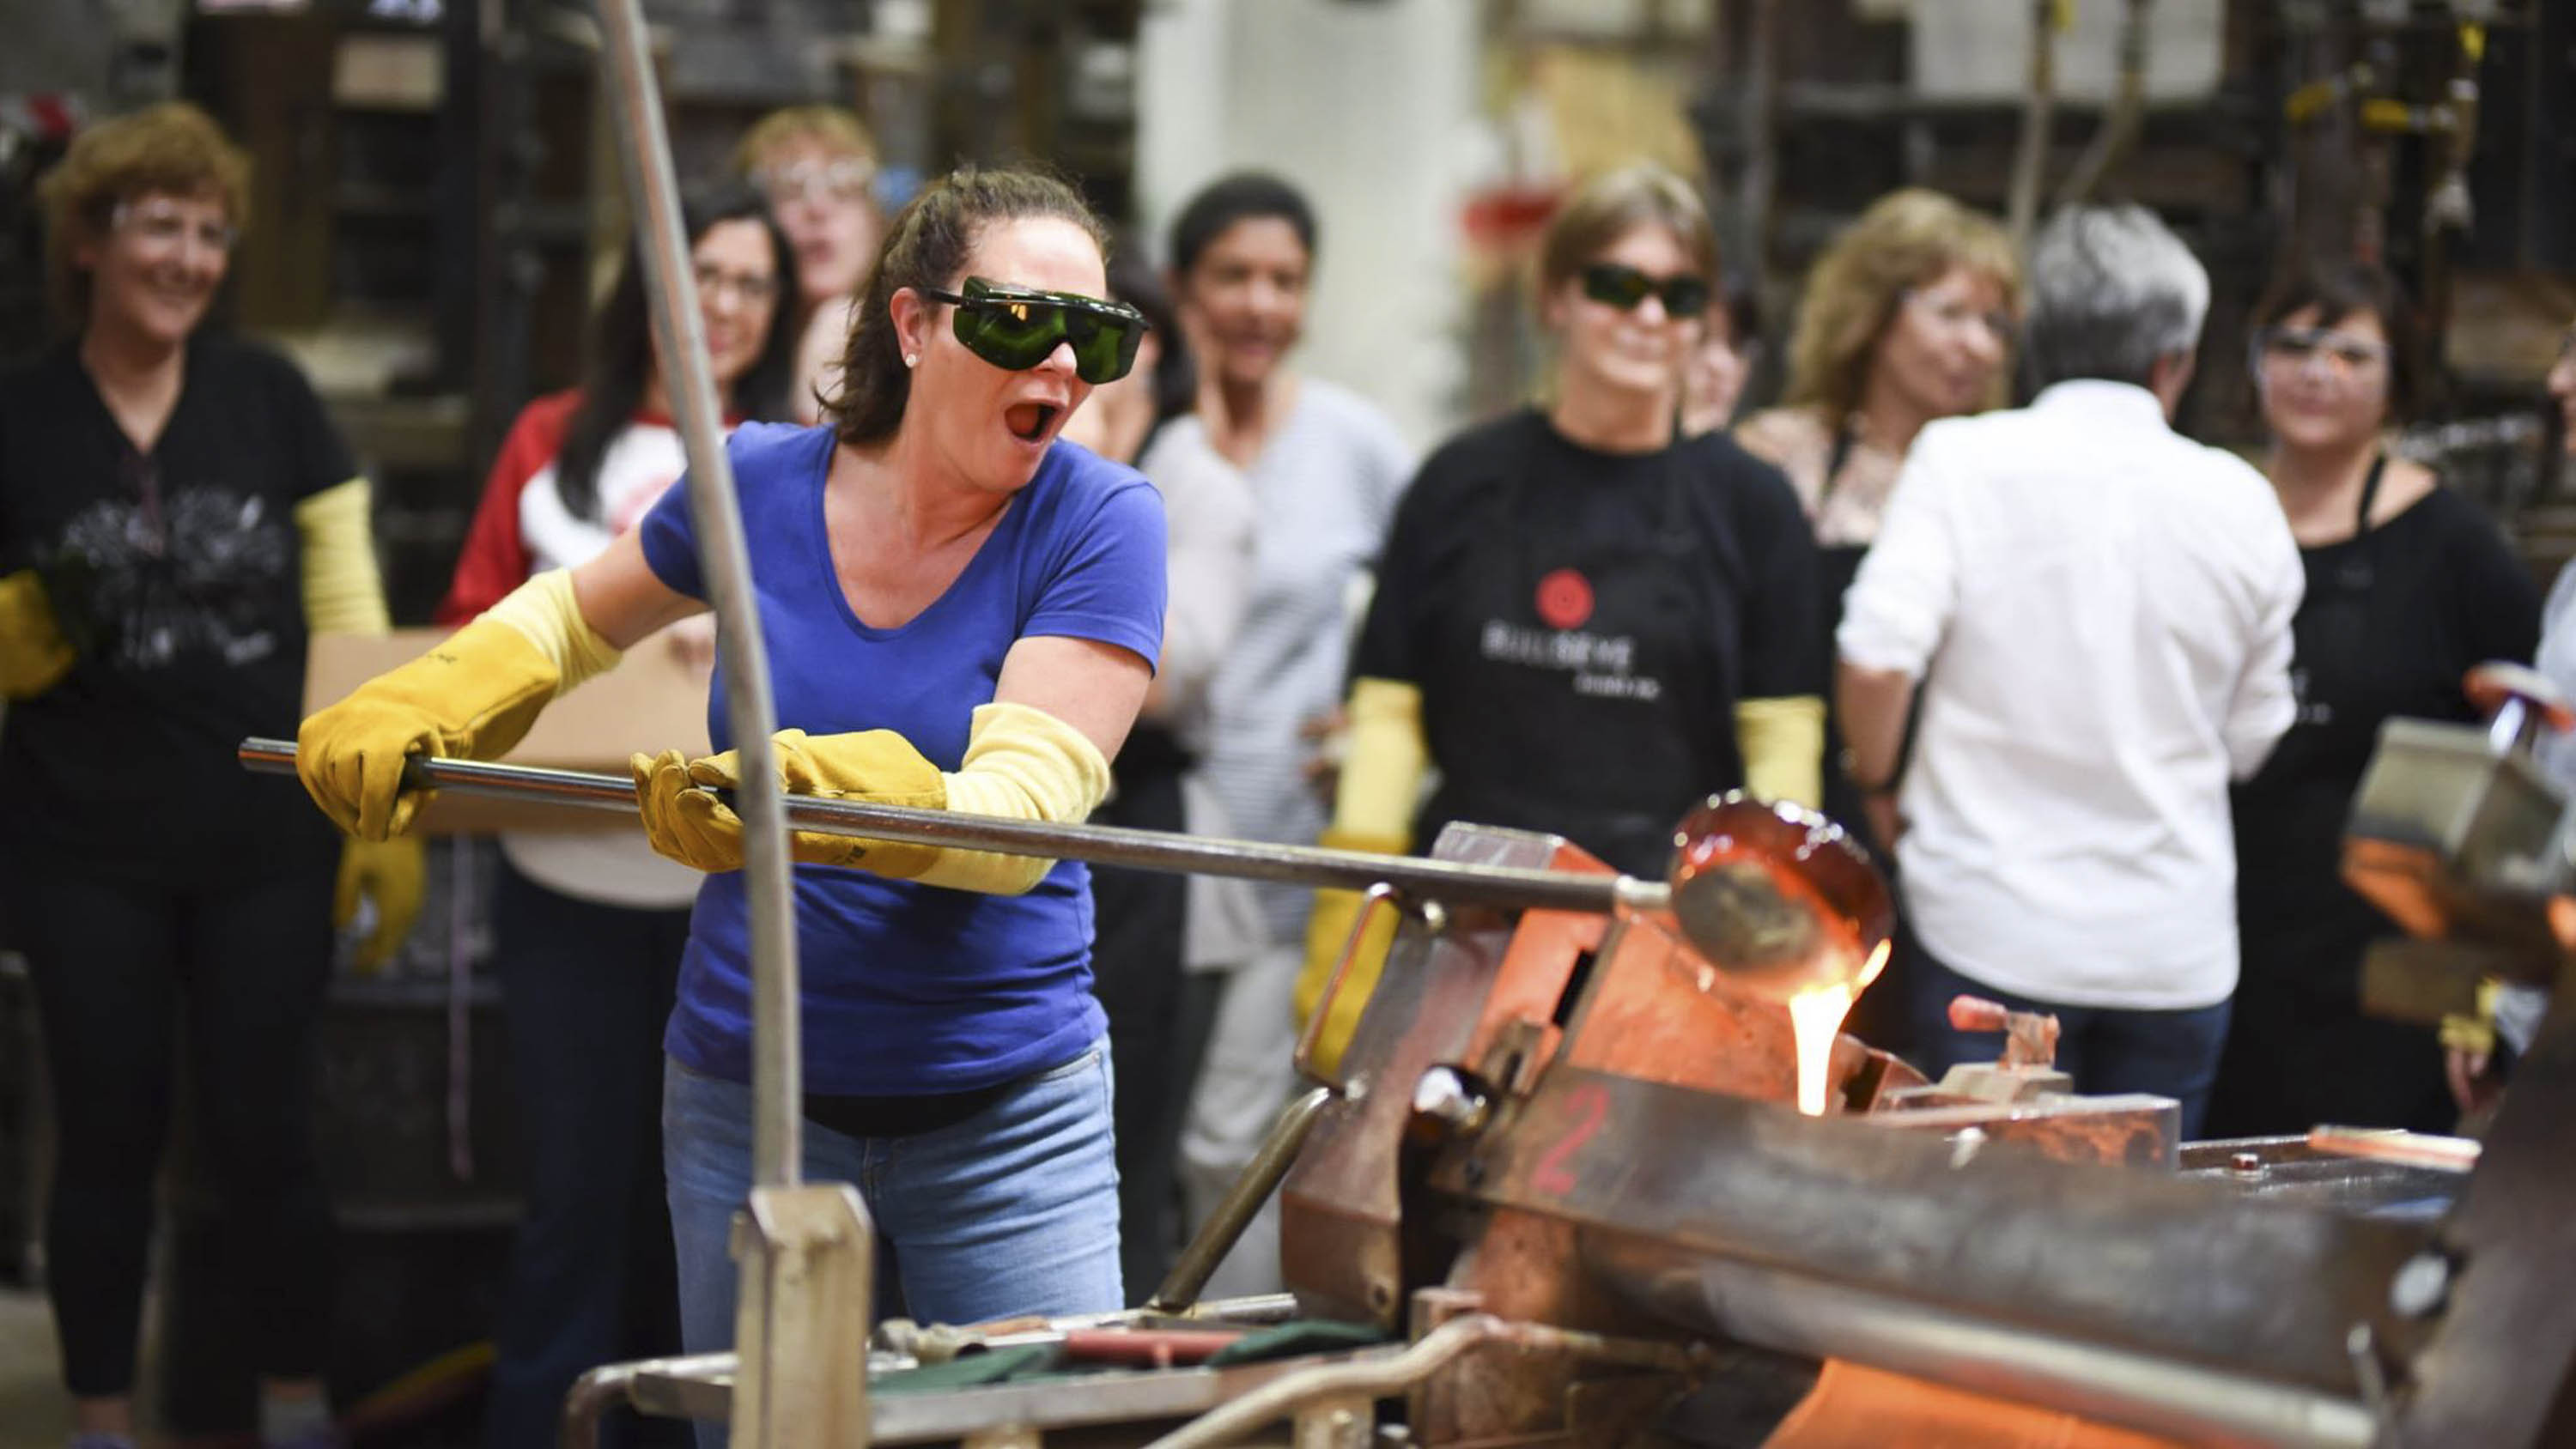 Glass-making at a workshop. A woman wearing safety glasses holds a long rod with molten glass on the end